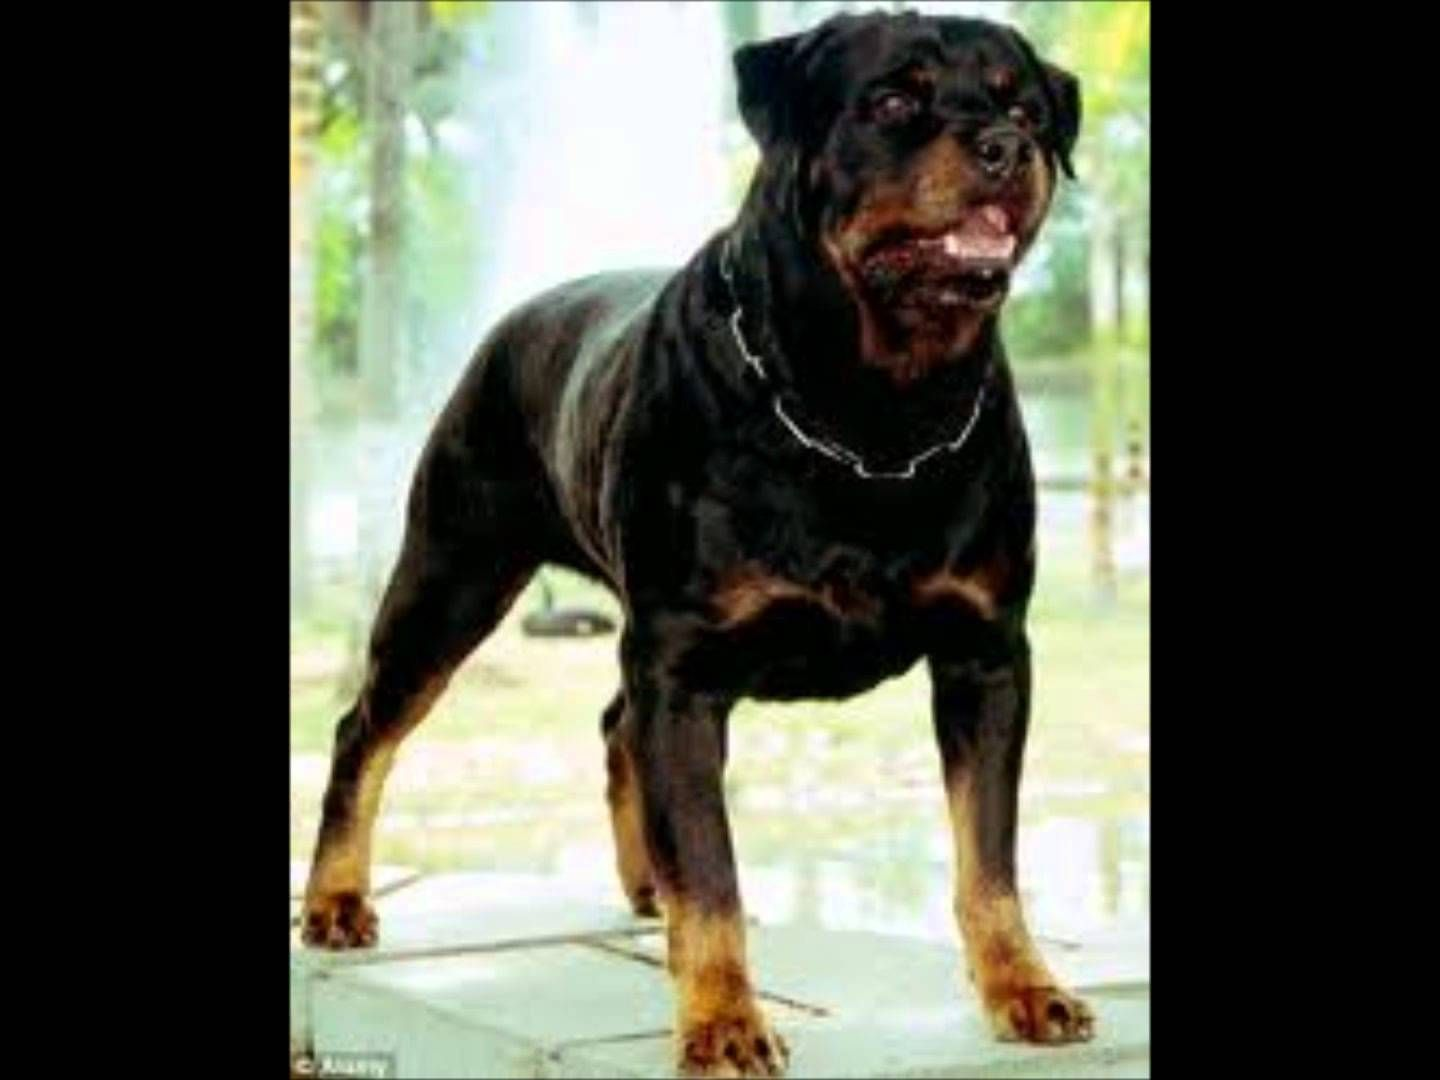 Pin Rottweiler Vs Pitbull Lilzeu Tattoo De Deto Forum On Pinterest